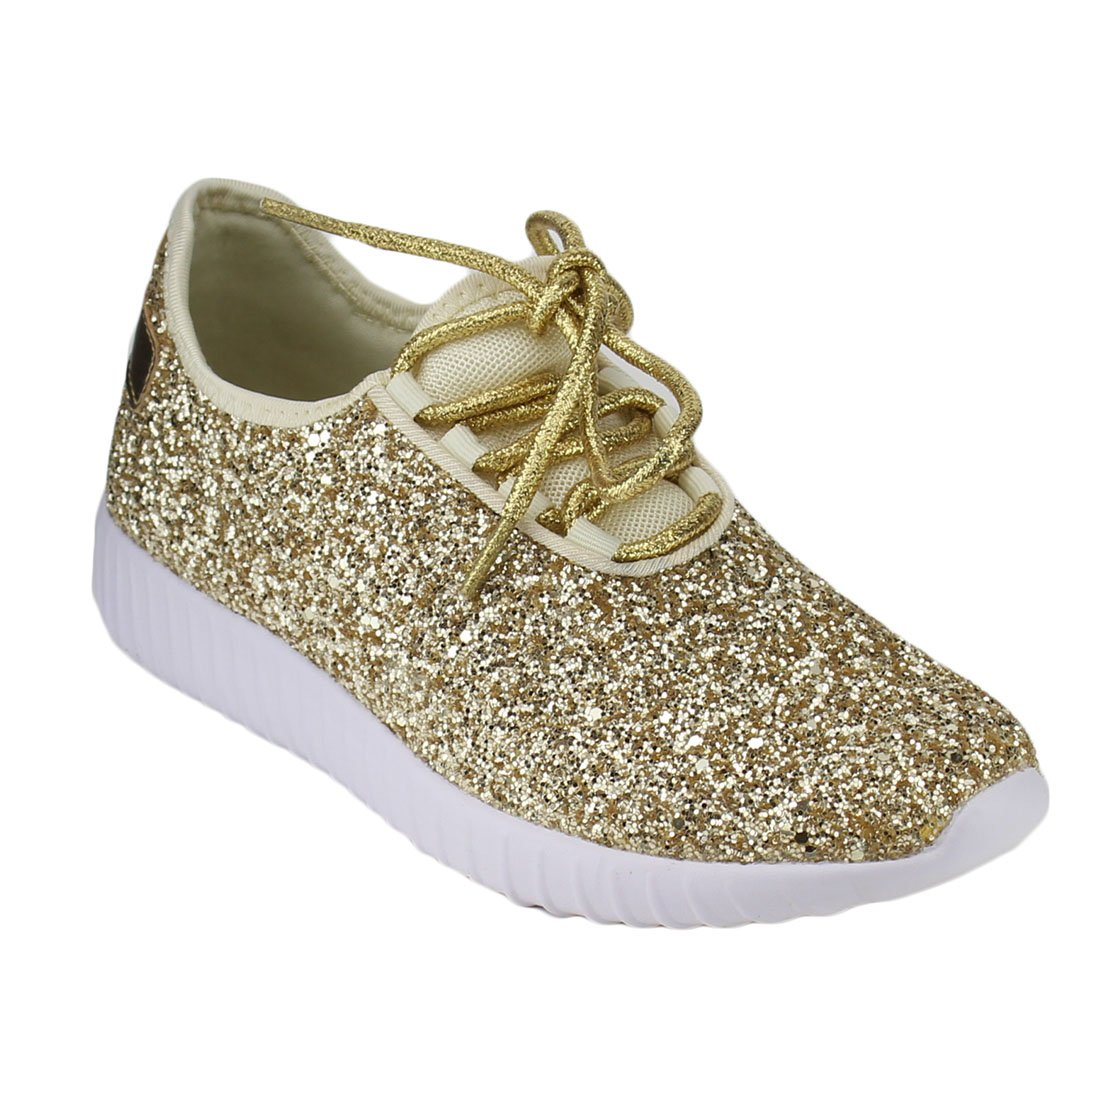 Forever Link Women's Remy-18 Glitter Sneakers | Fashion Sneakers | Sparkly Shoes For Women B0788H9YG5 7 M US|Gold